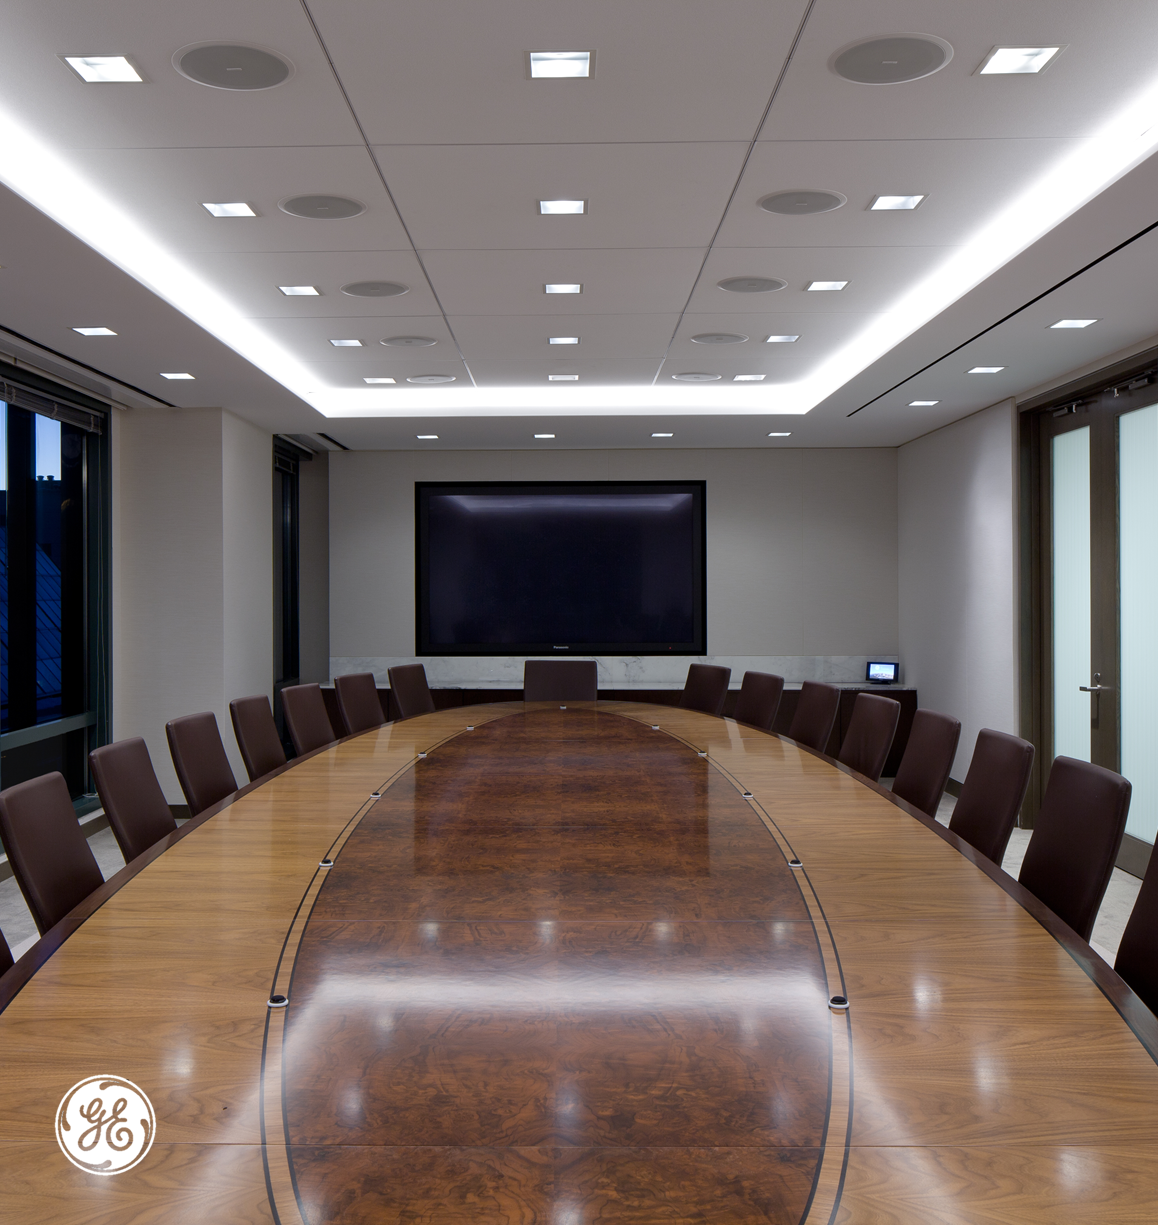 Cove Lighting In A Conference Room. Along With A Soffit